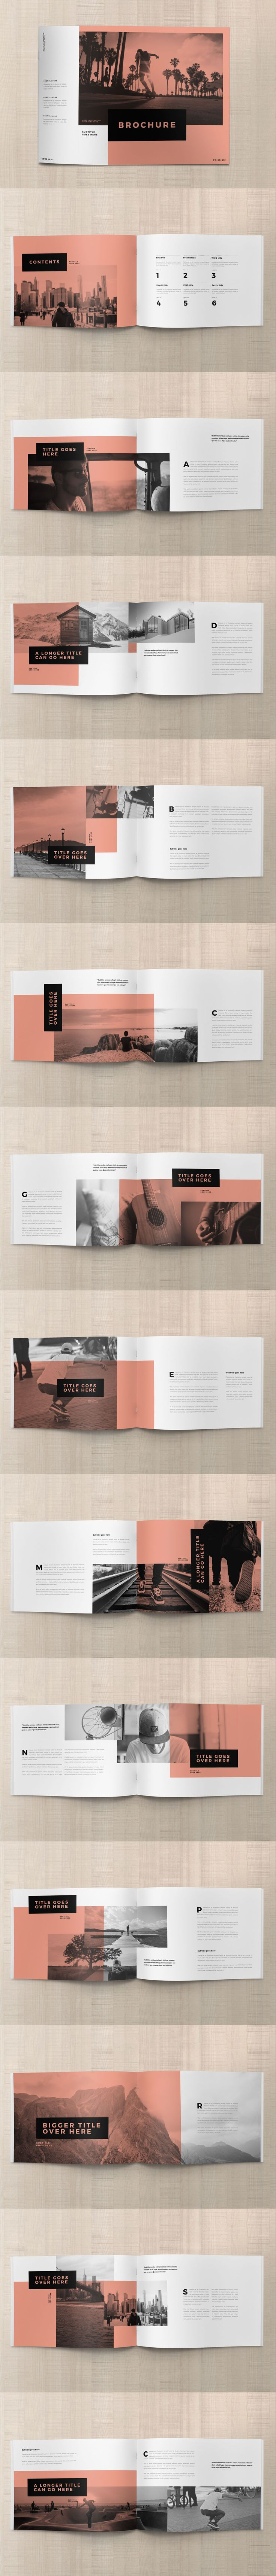 Minimal White Simple Brochure Template InDesign INDD - 28 Custom Pages